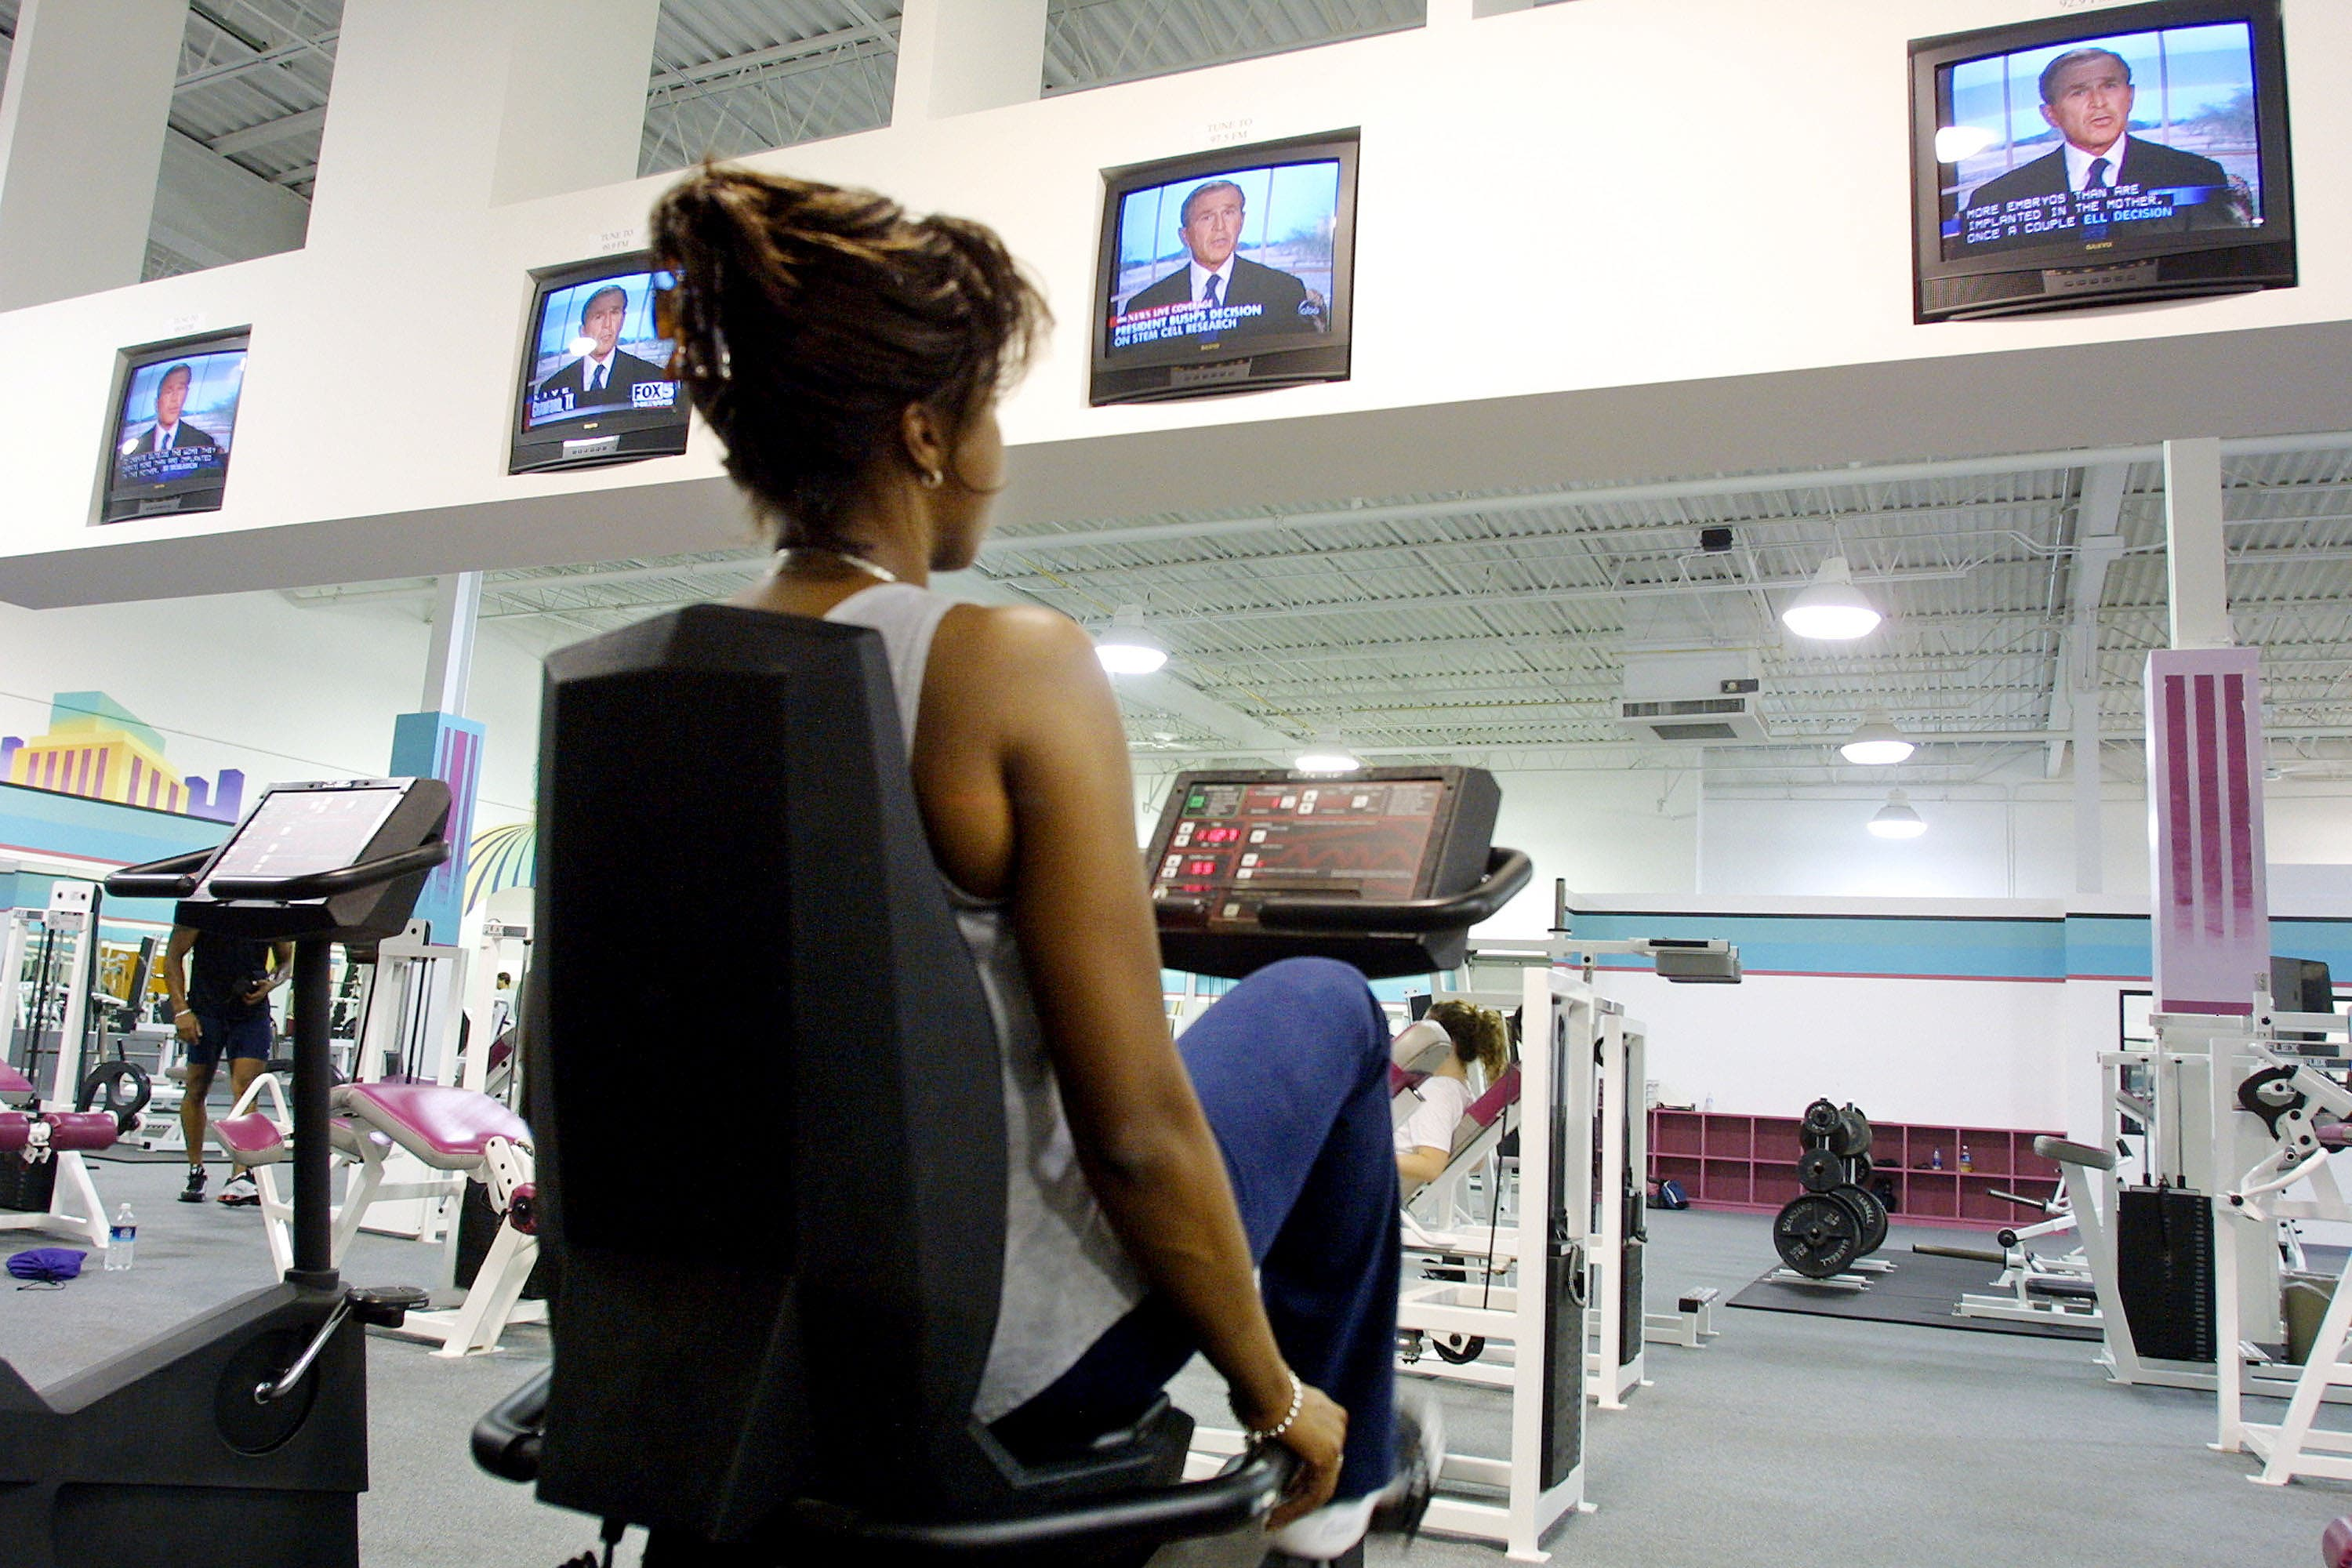 Gyms are public places so one can expect to have complaints- like the choice of music, lighting and temperature